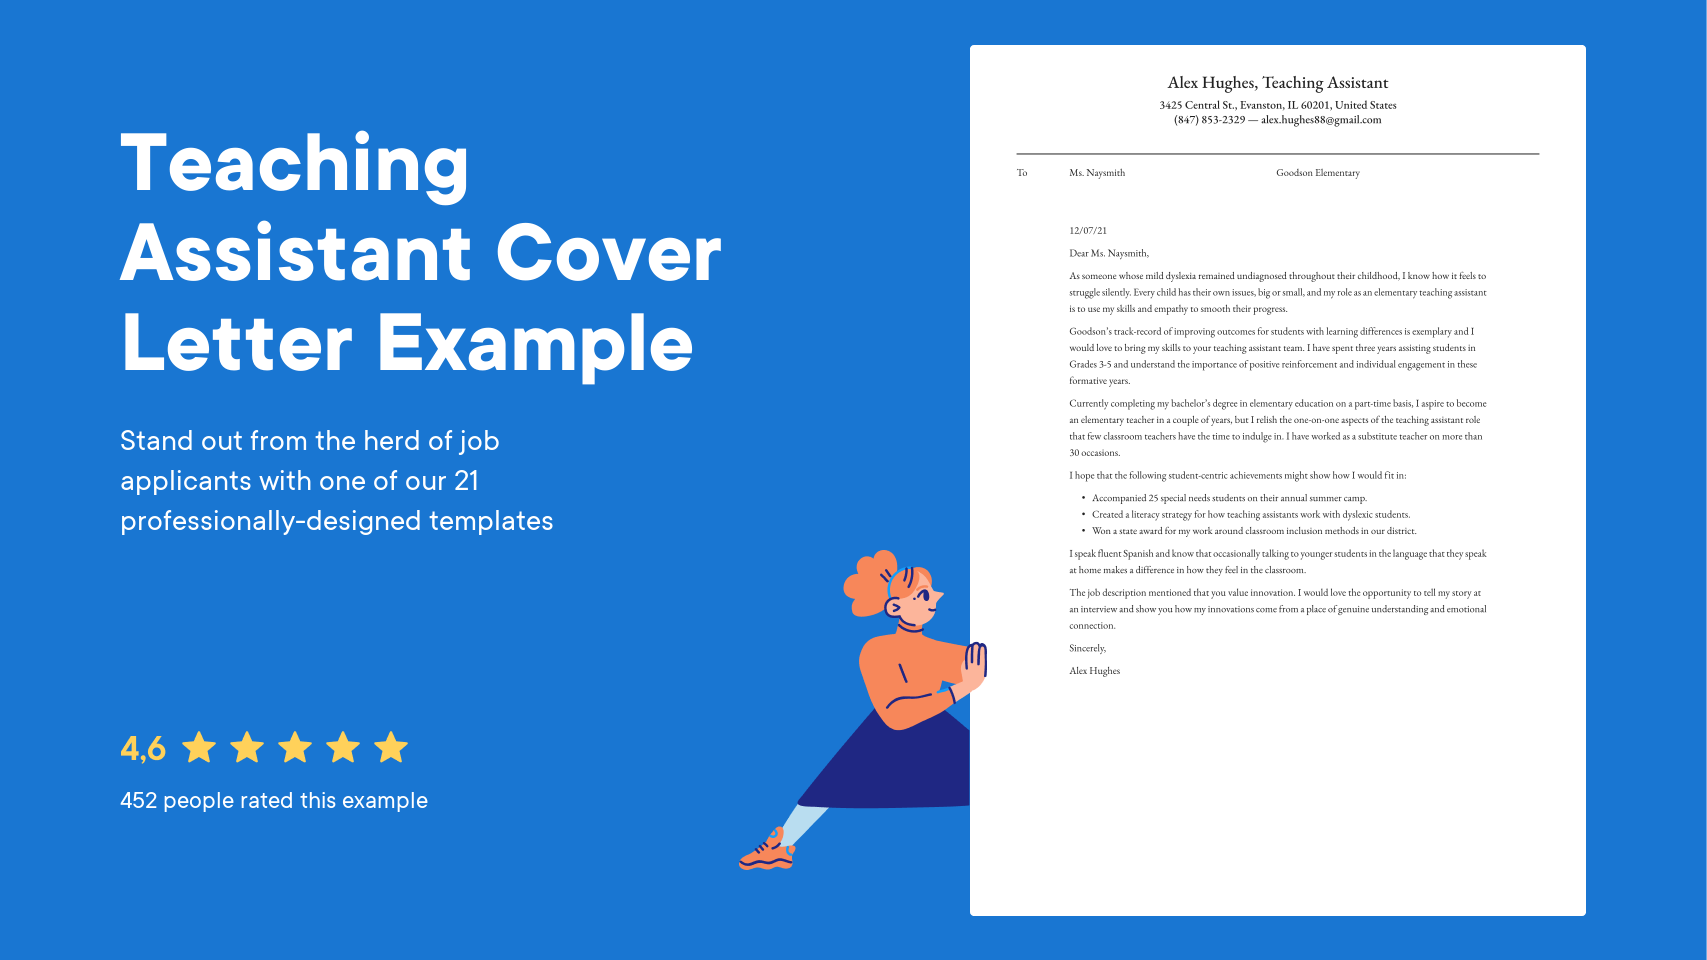 Teaching Assistant Cover Letter Examples Expert Tips Free